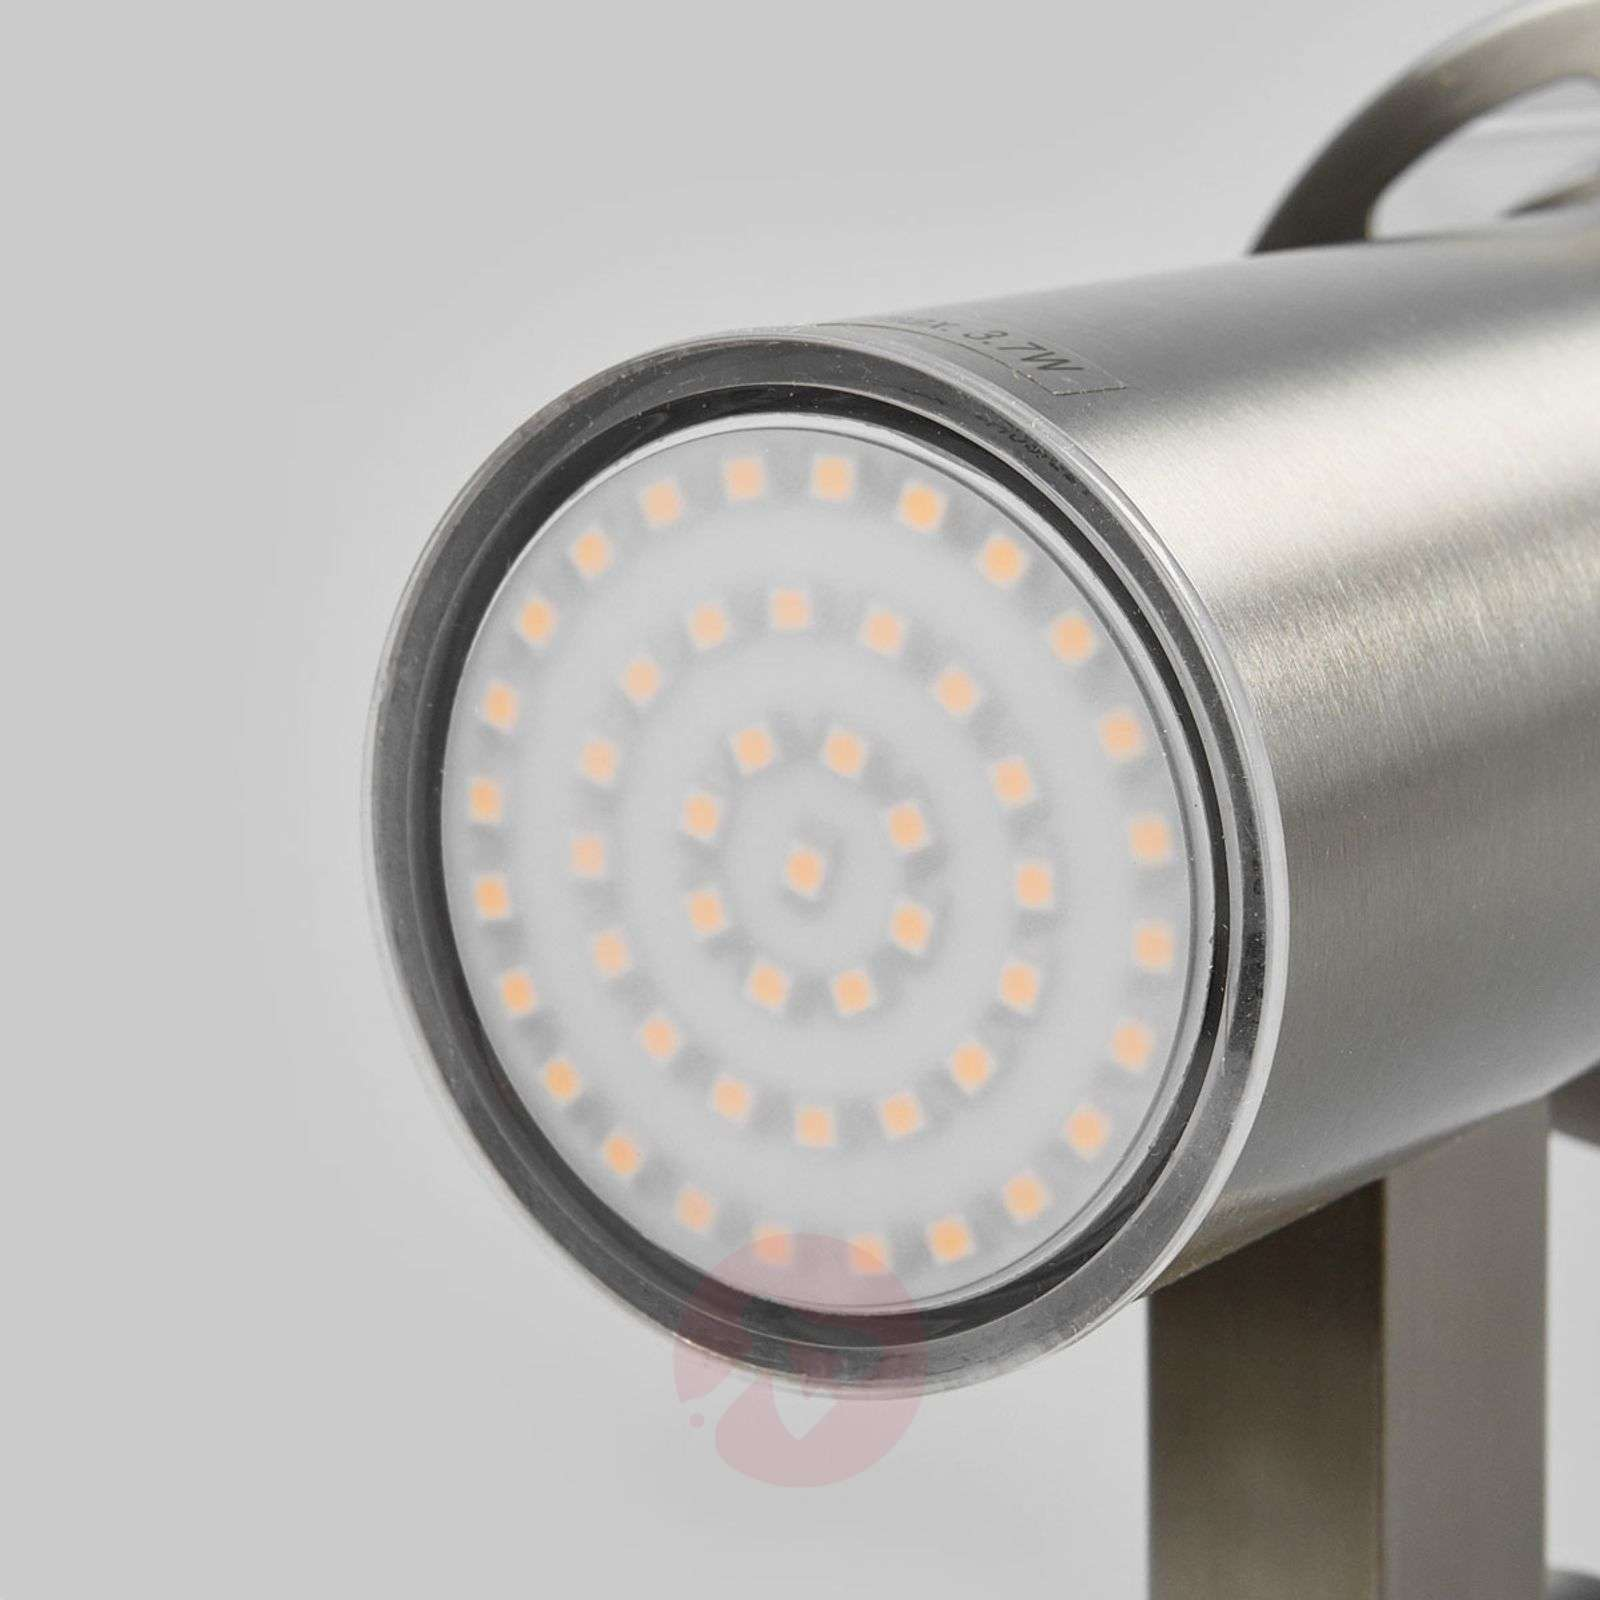 Lights That Stick On The Wall : Decorative LED outdoor light Trono Stick with PIR Lights.co.uk